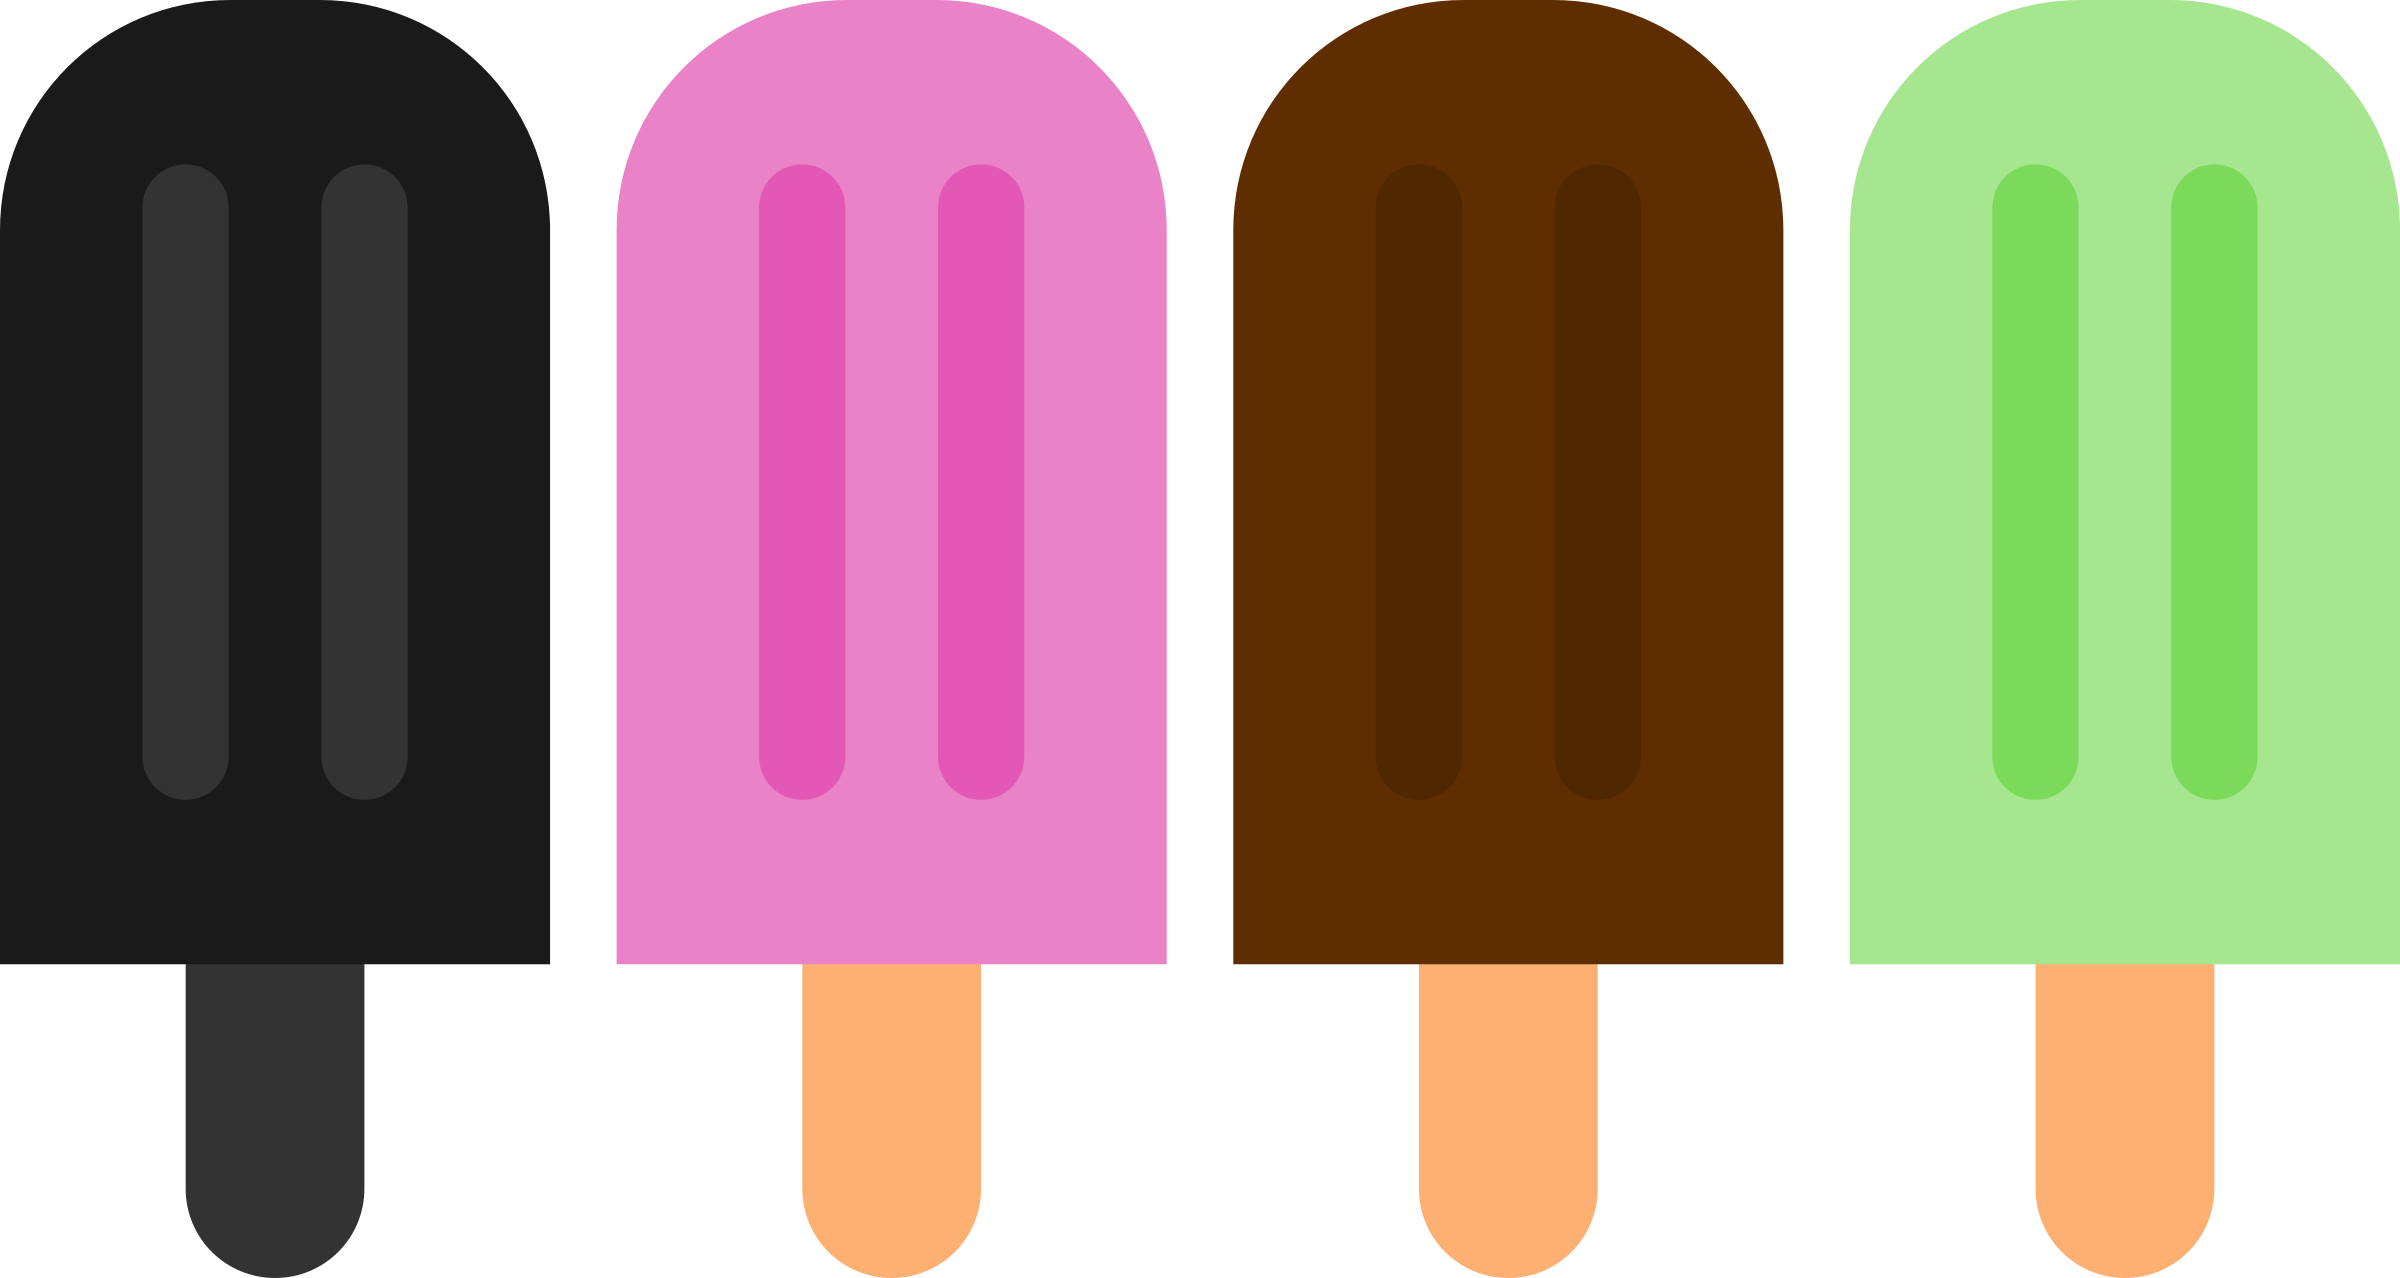 Minimalist Popsicle Vector by Maiconfz